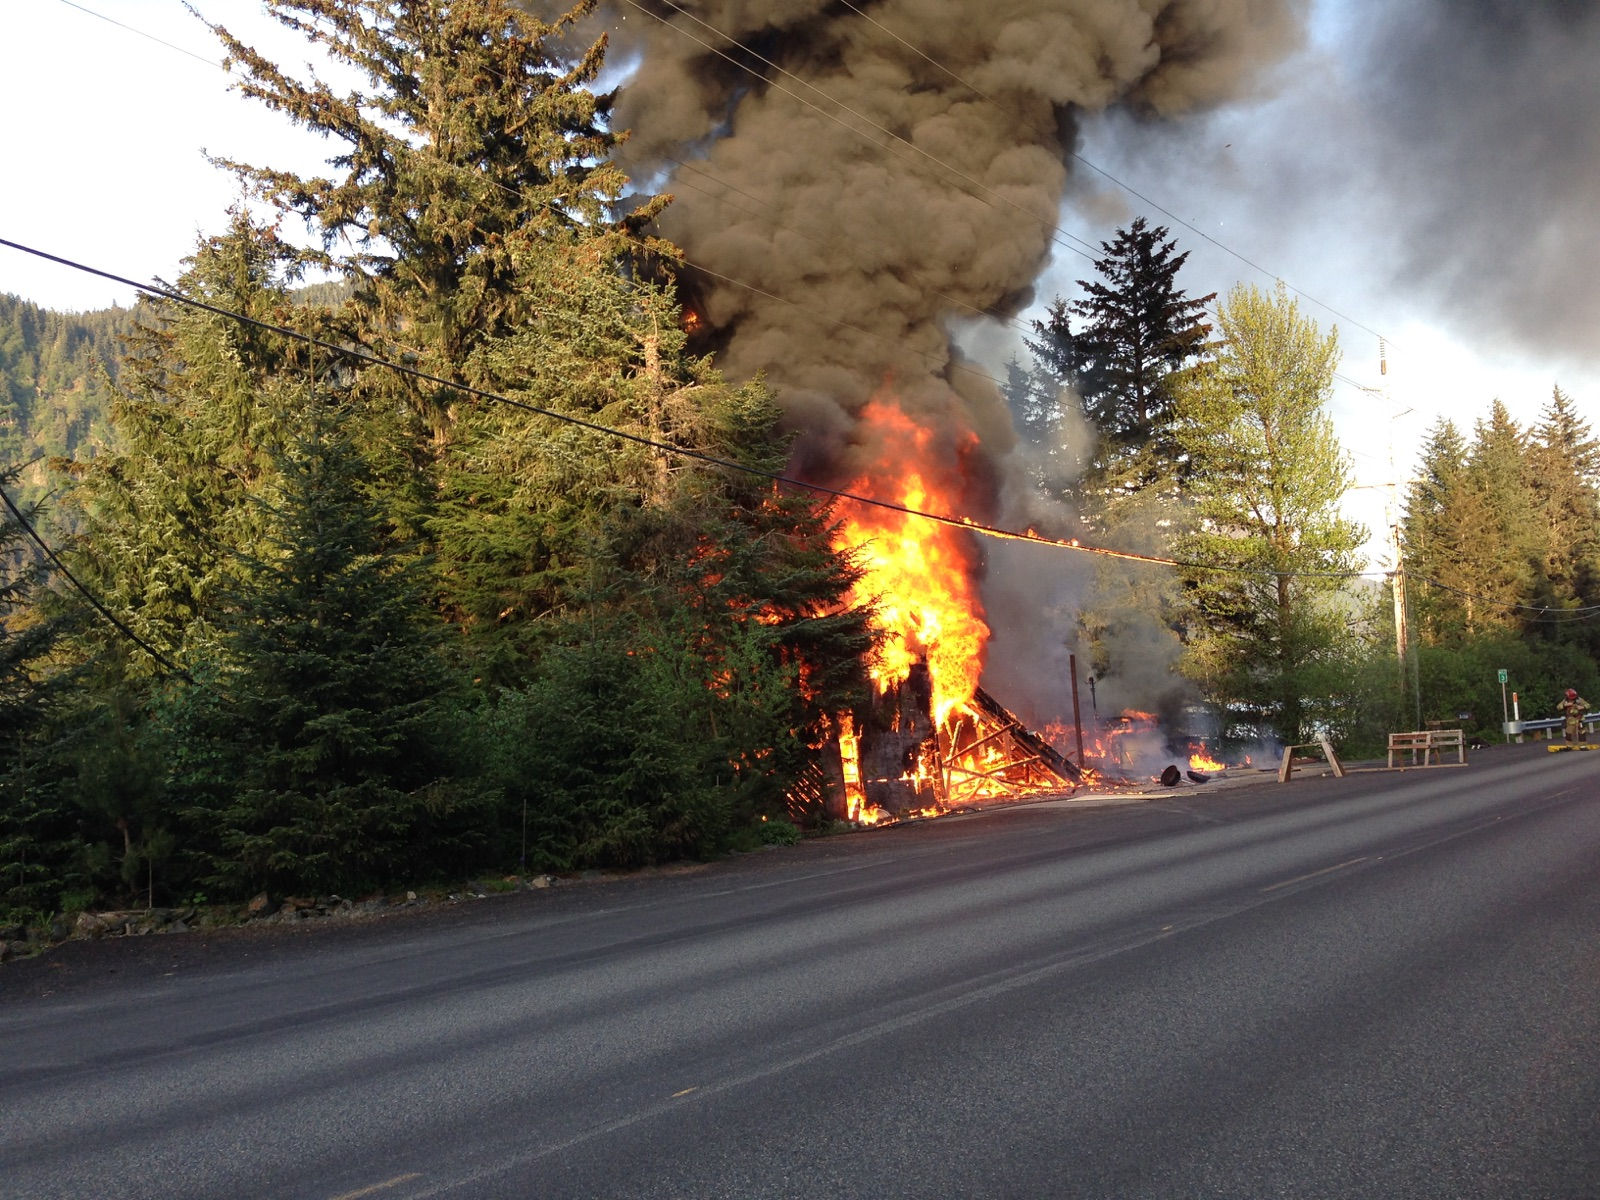 A structure fire along  North Douglas Highway near mile 3, May 14, 2015. (Photo by Casey Kelly/KTOO)